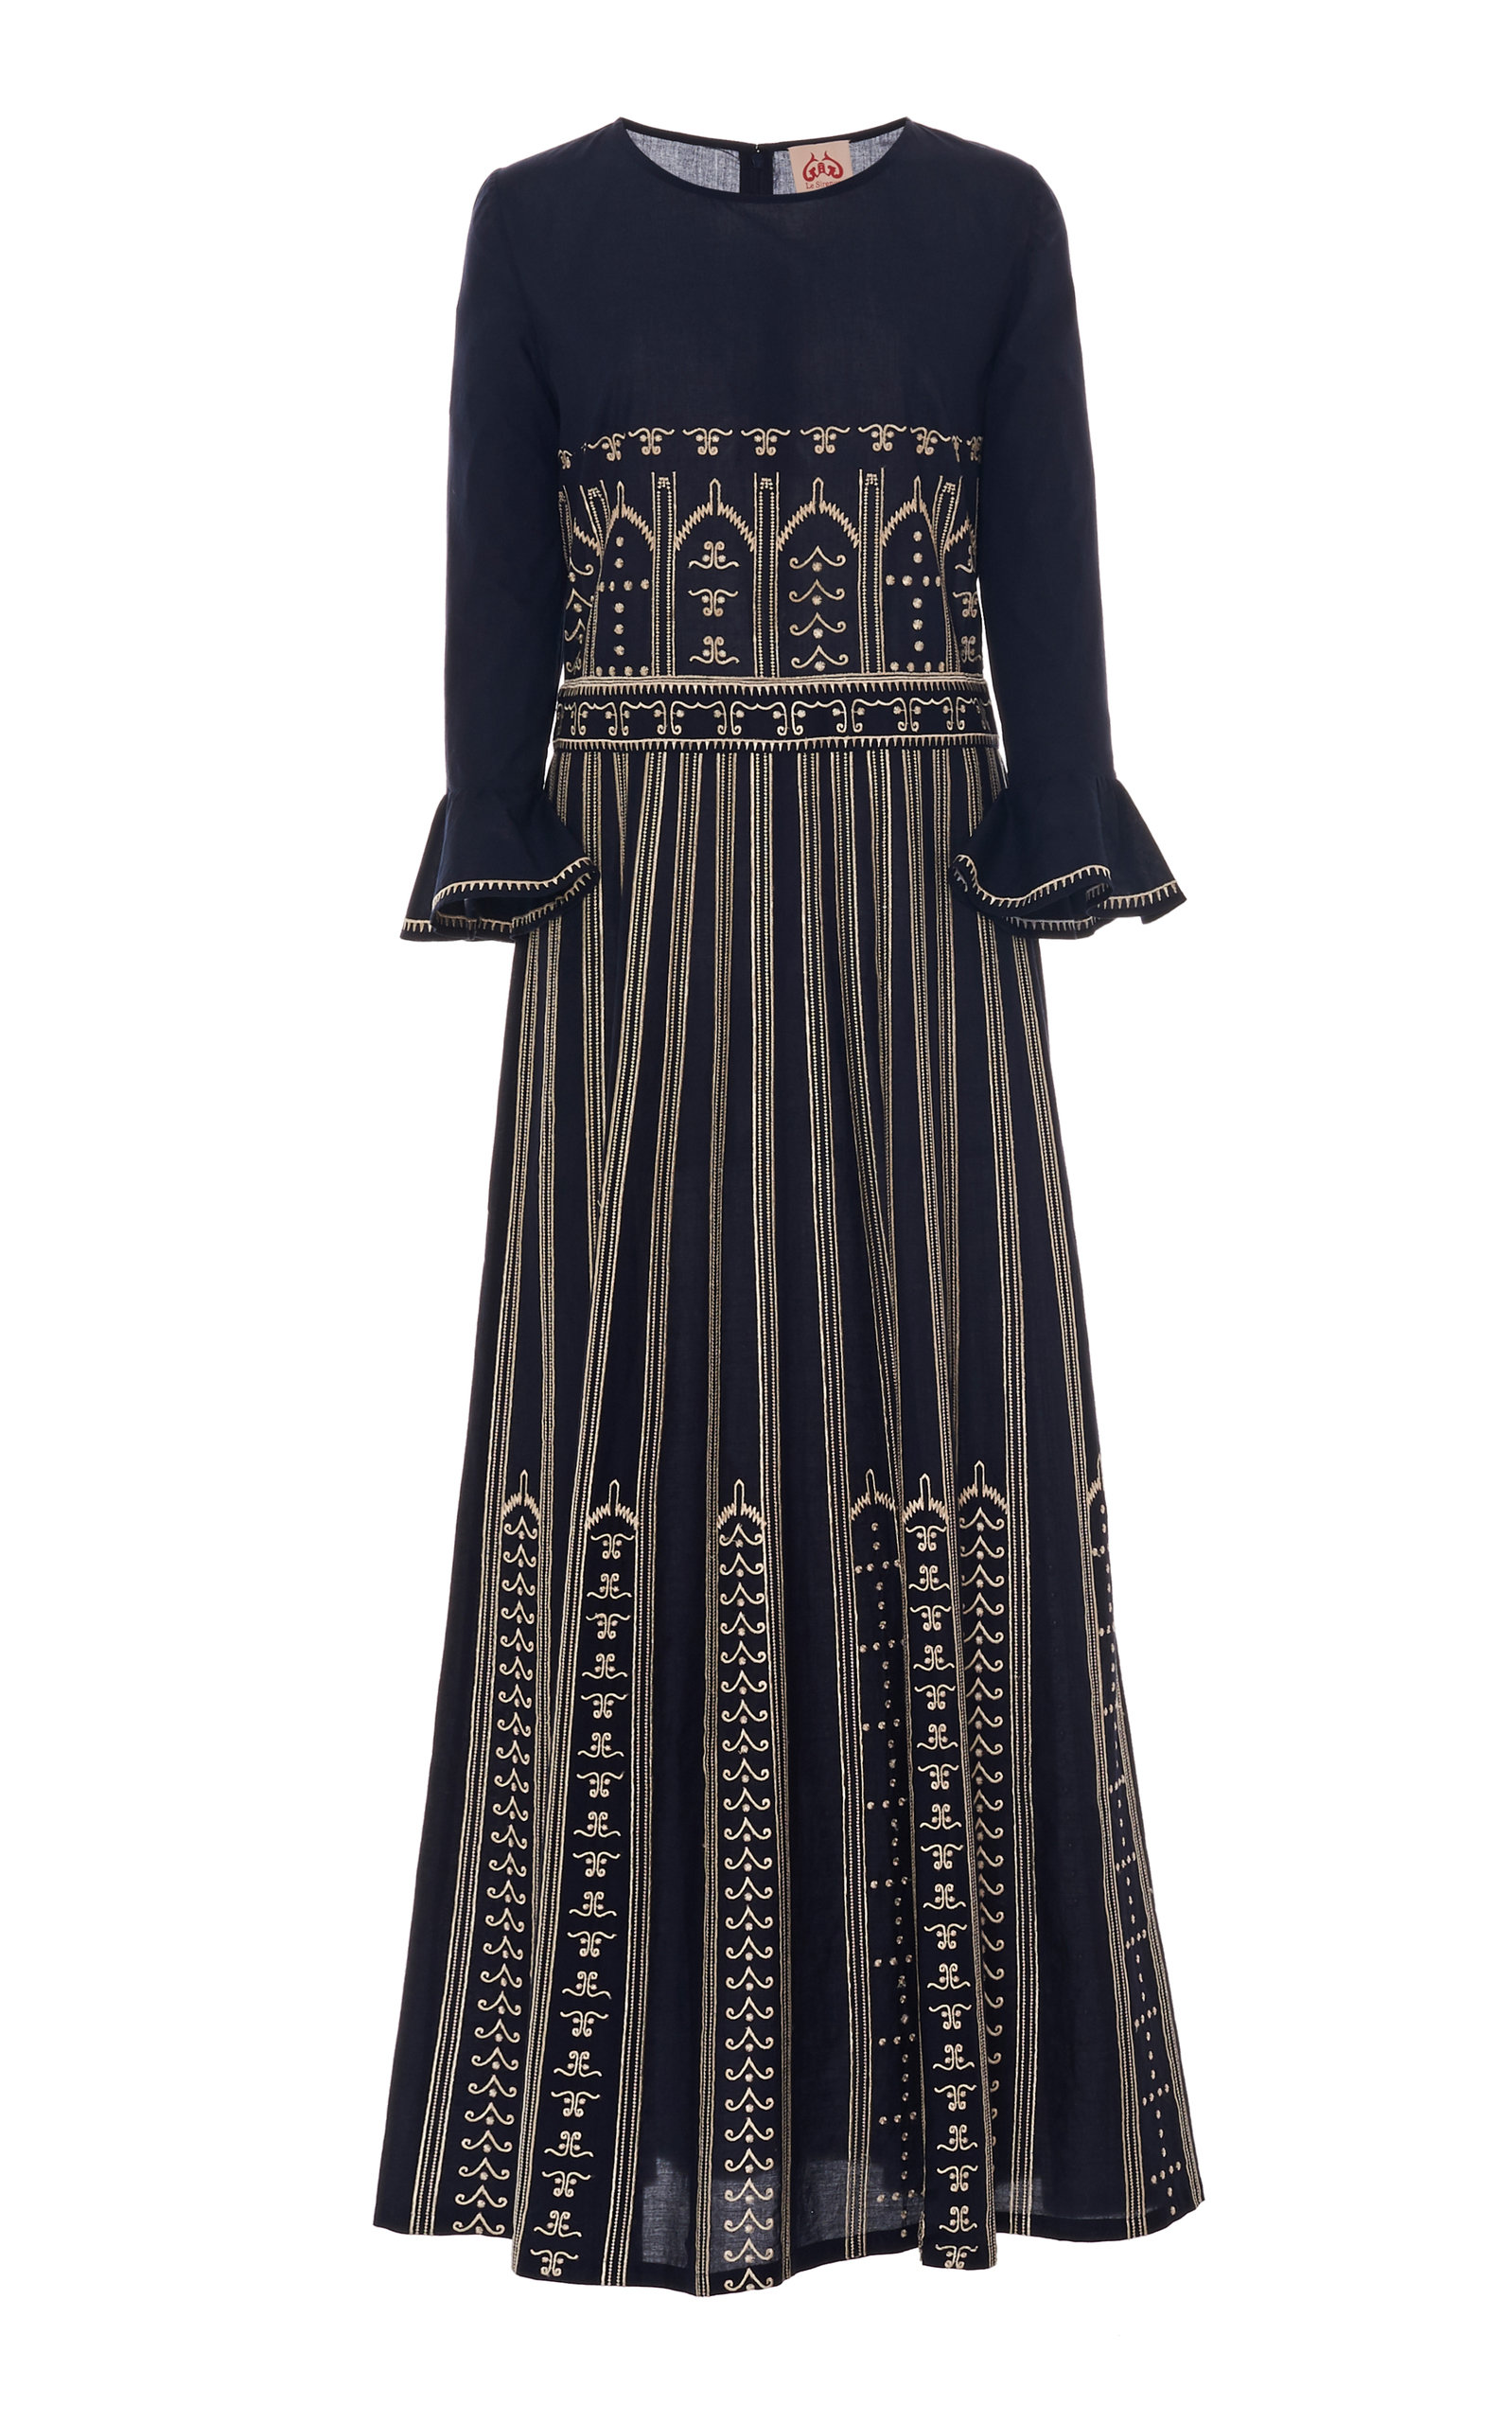 Buy Le Sirenuse Positano Greek Mask Embroidery Tracey Dress online, shop Le Sirenuse Positano at the best price